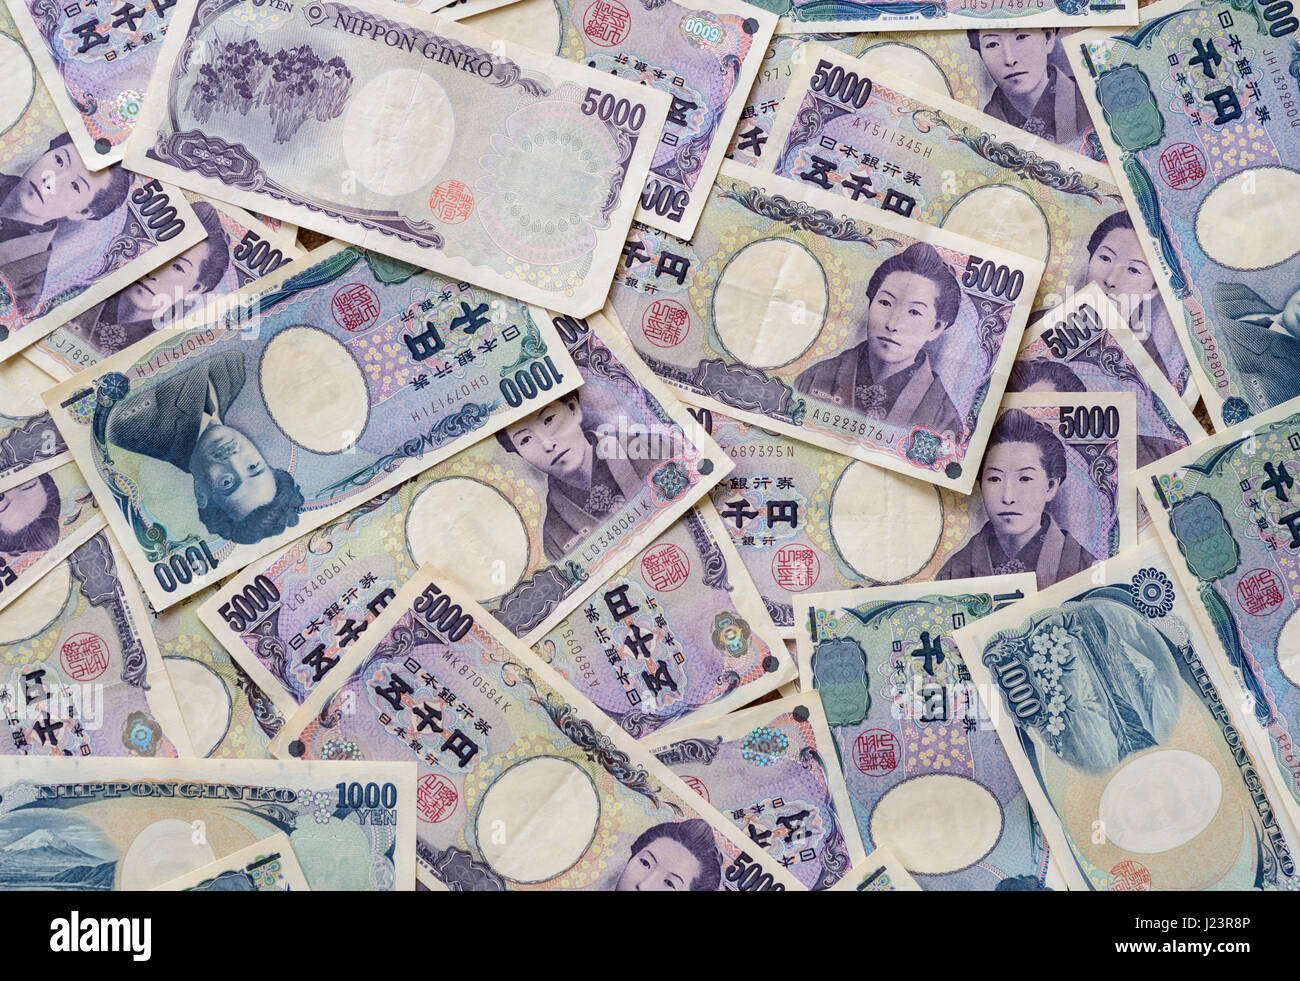 5000 and 1000 Japanese Yen banknotes. - Stock Image